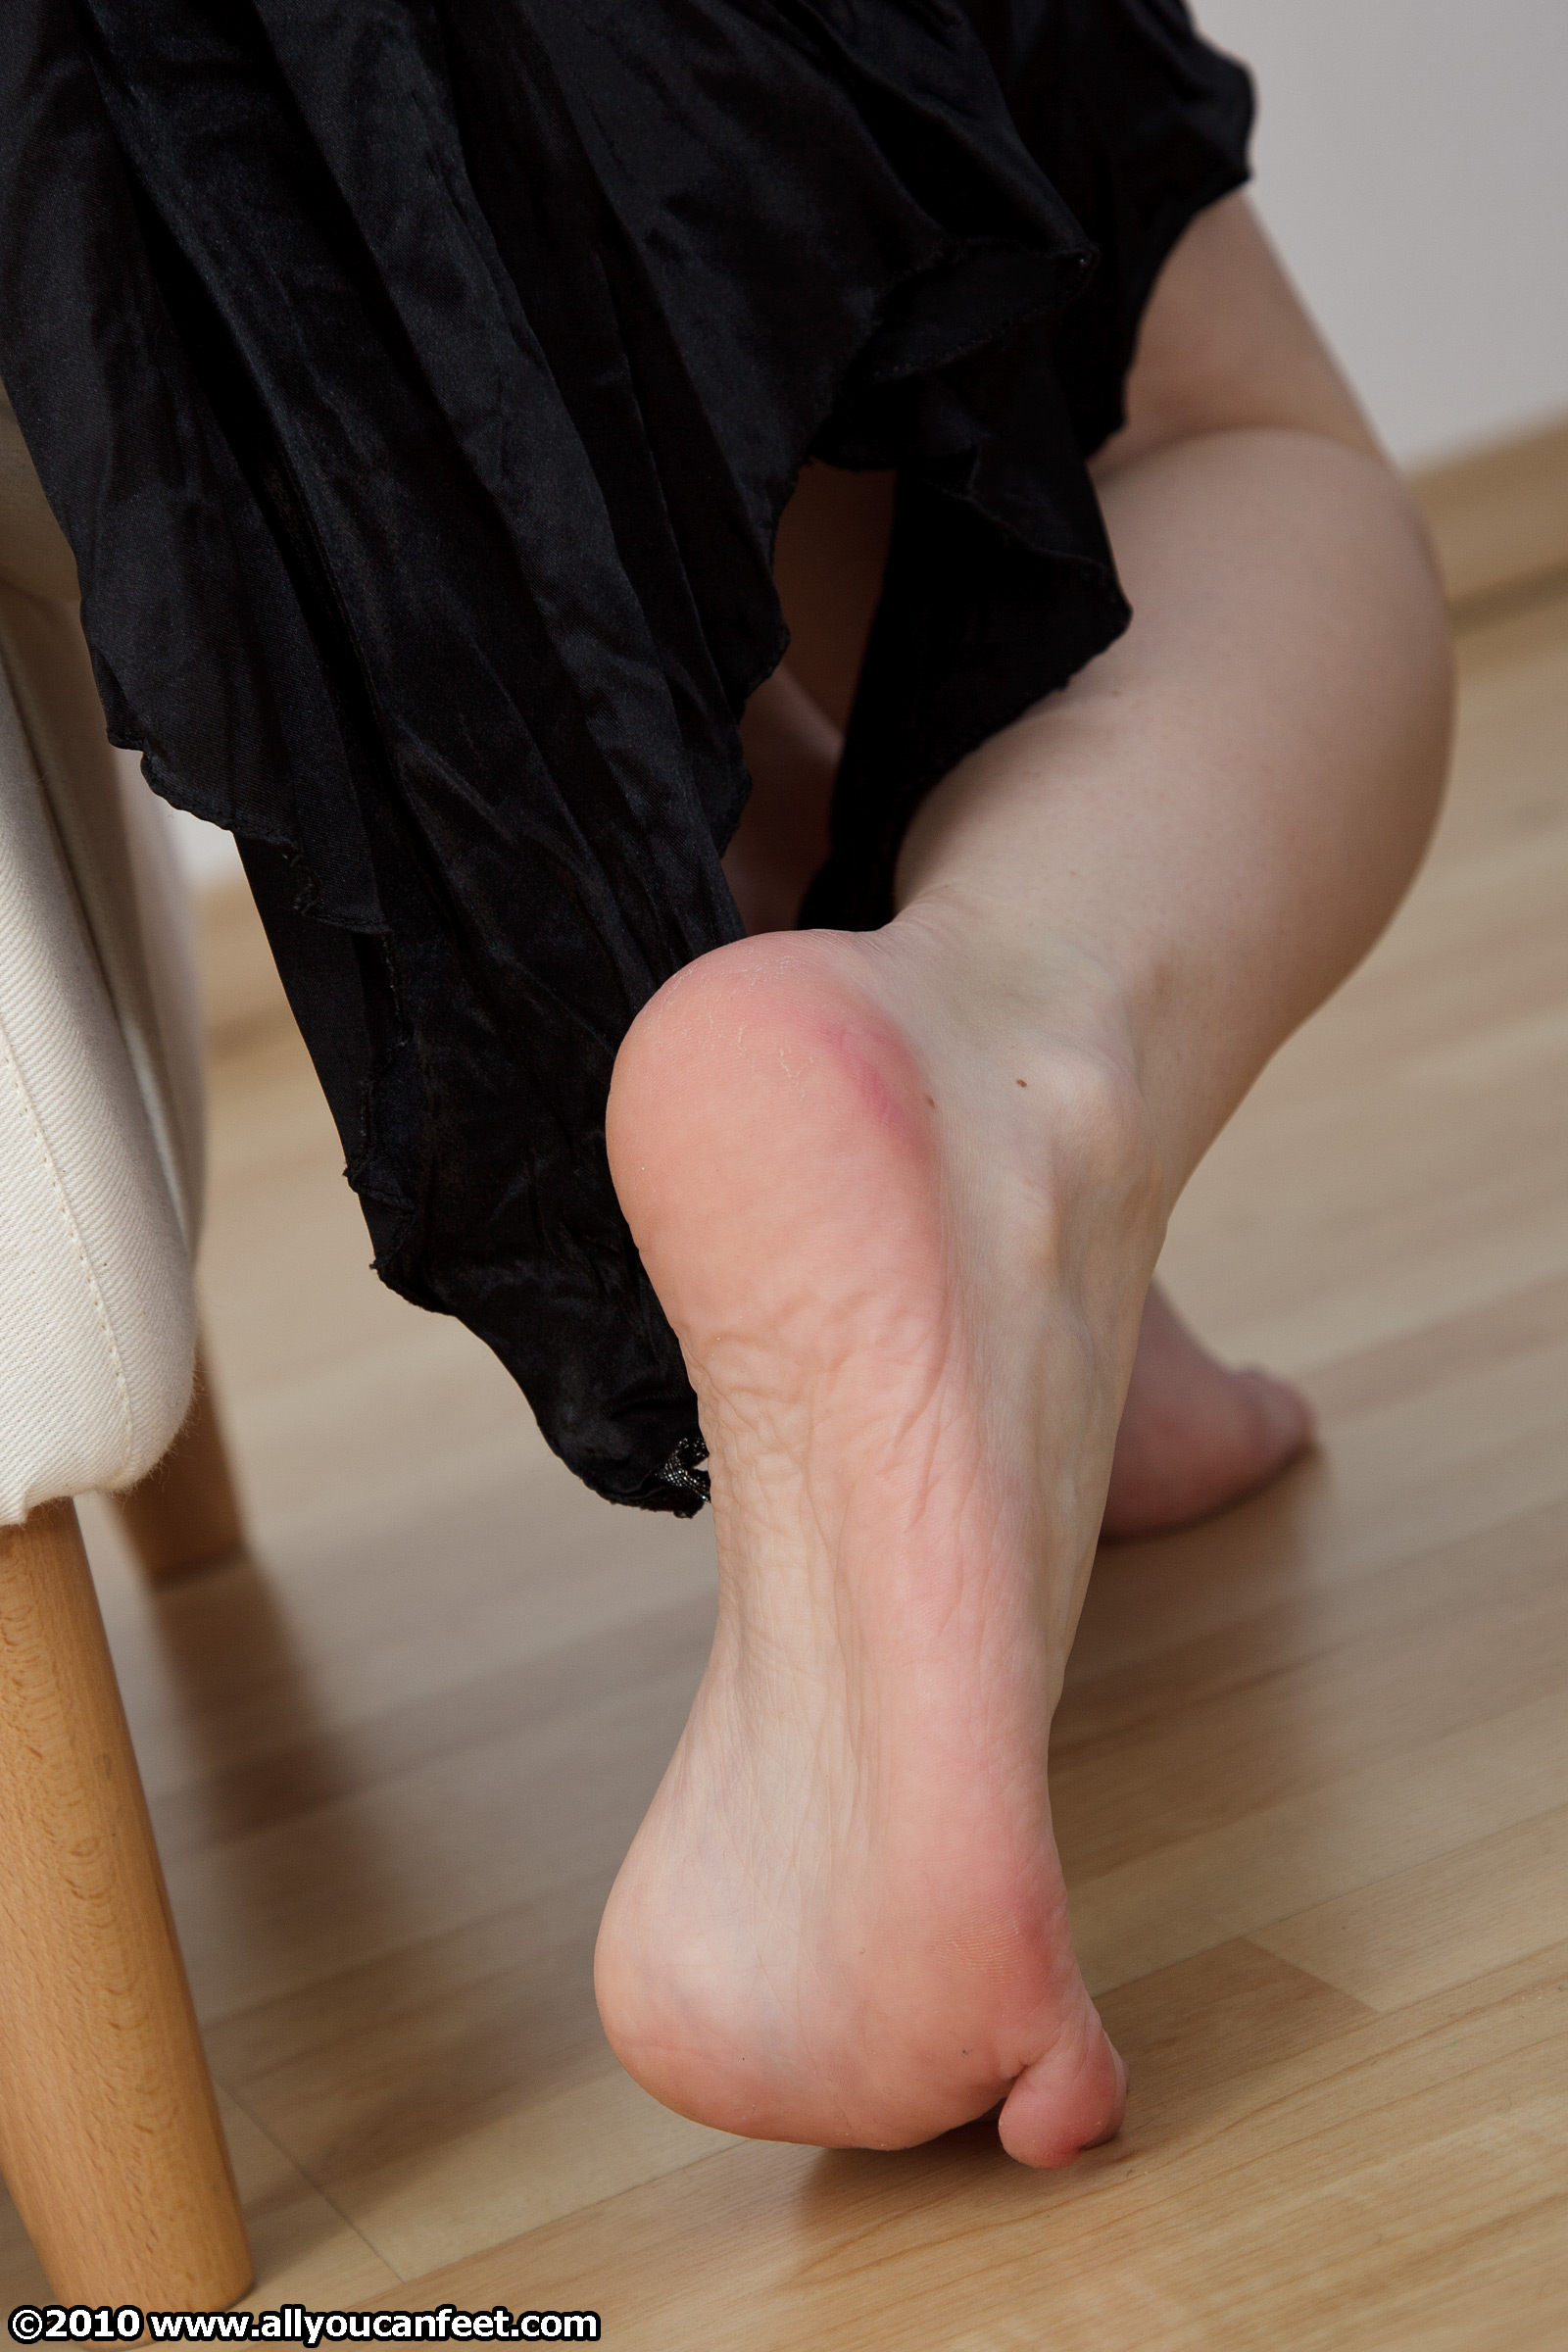 Get Your Fill Of Fantastic Footsies Today At 'All You Can Feet ...